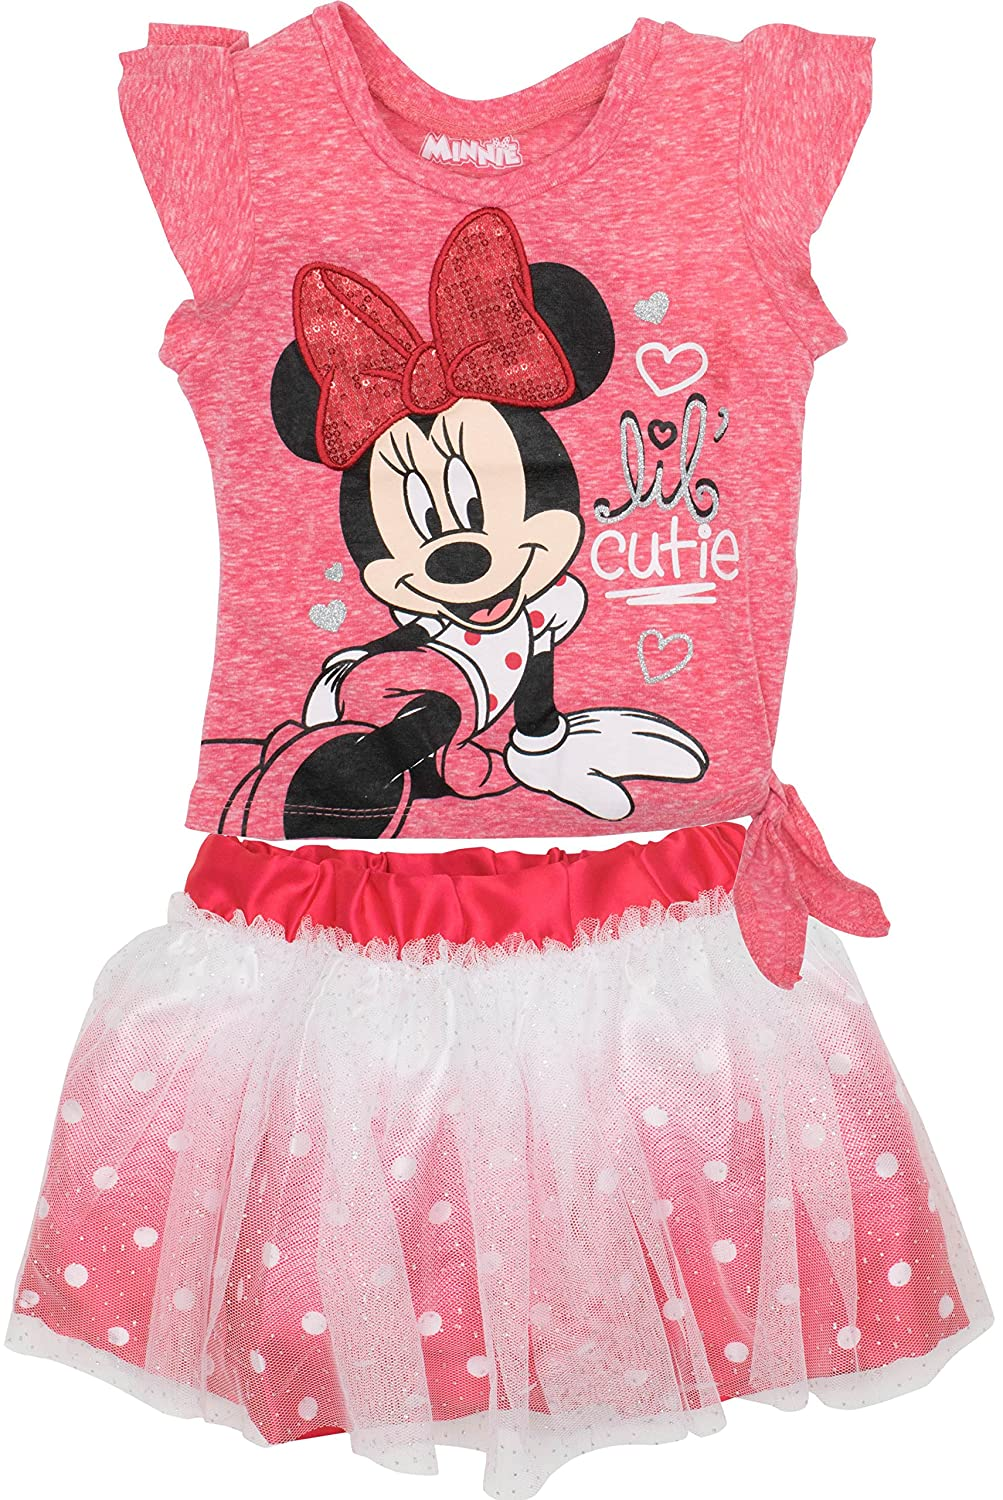 Disney Minnie Mouse Toddler Girls' Fashion T-Shirt and Tulle Skirt Set